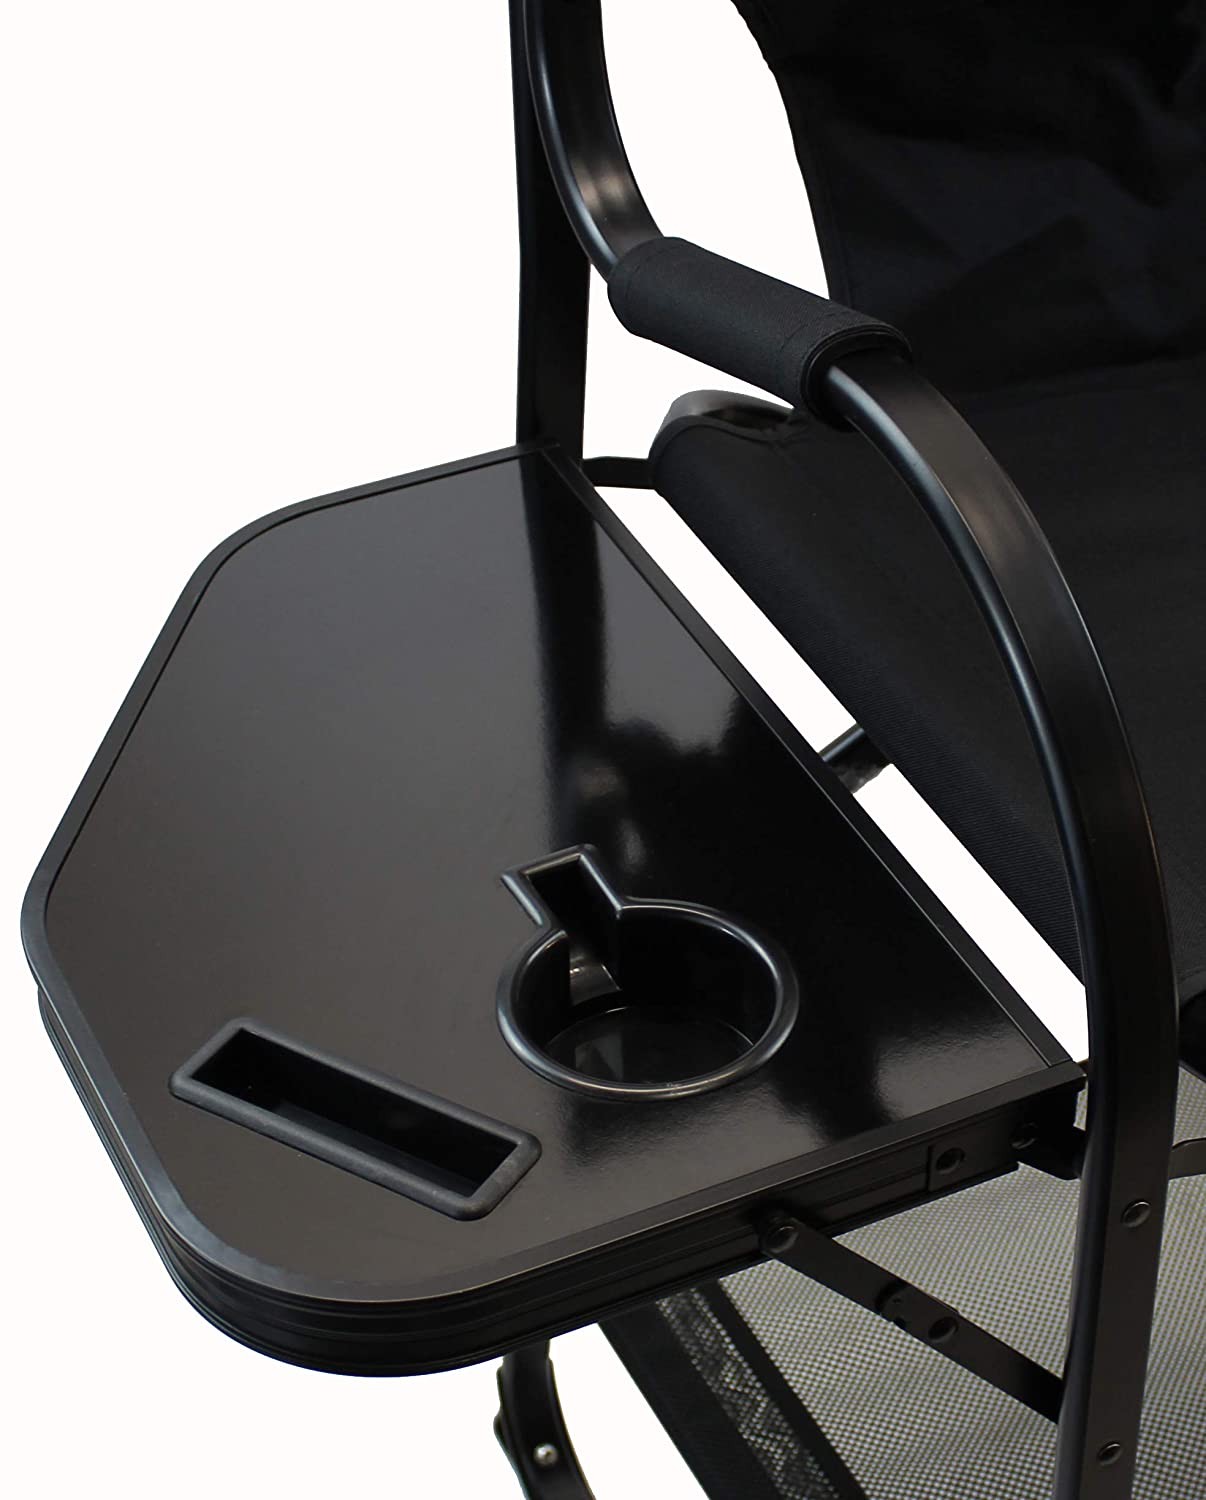 World Outdoor Products Professional Edition Tall Directors Chairs with Side Table,Built-in Cup and New Cellphone Holder,New Removable Front and Backside Patches.